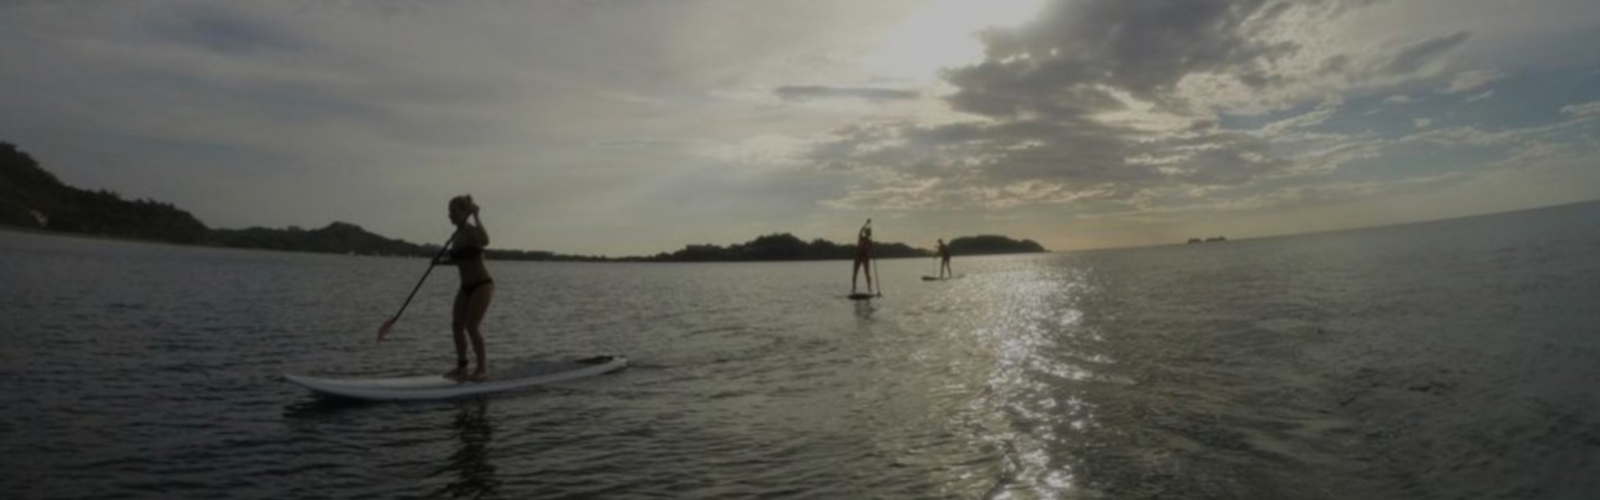 SUP Stand up Paddleboard Tamarindo, Costa Rica - Native's Way Costa Rica Tamarindo Tours and Transfers